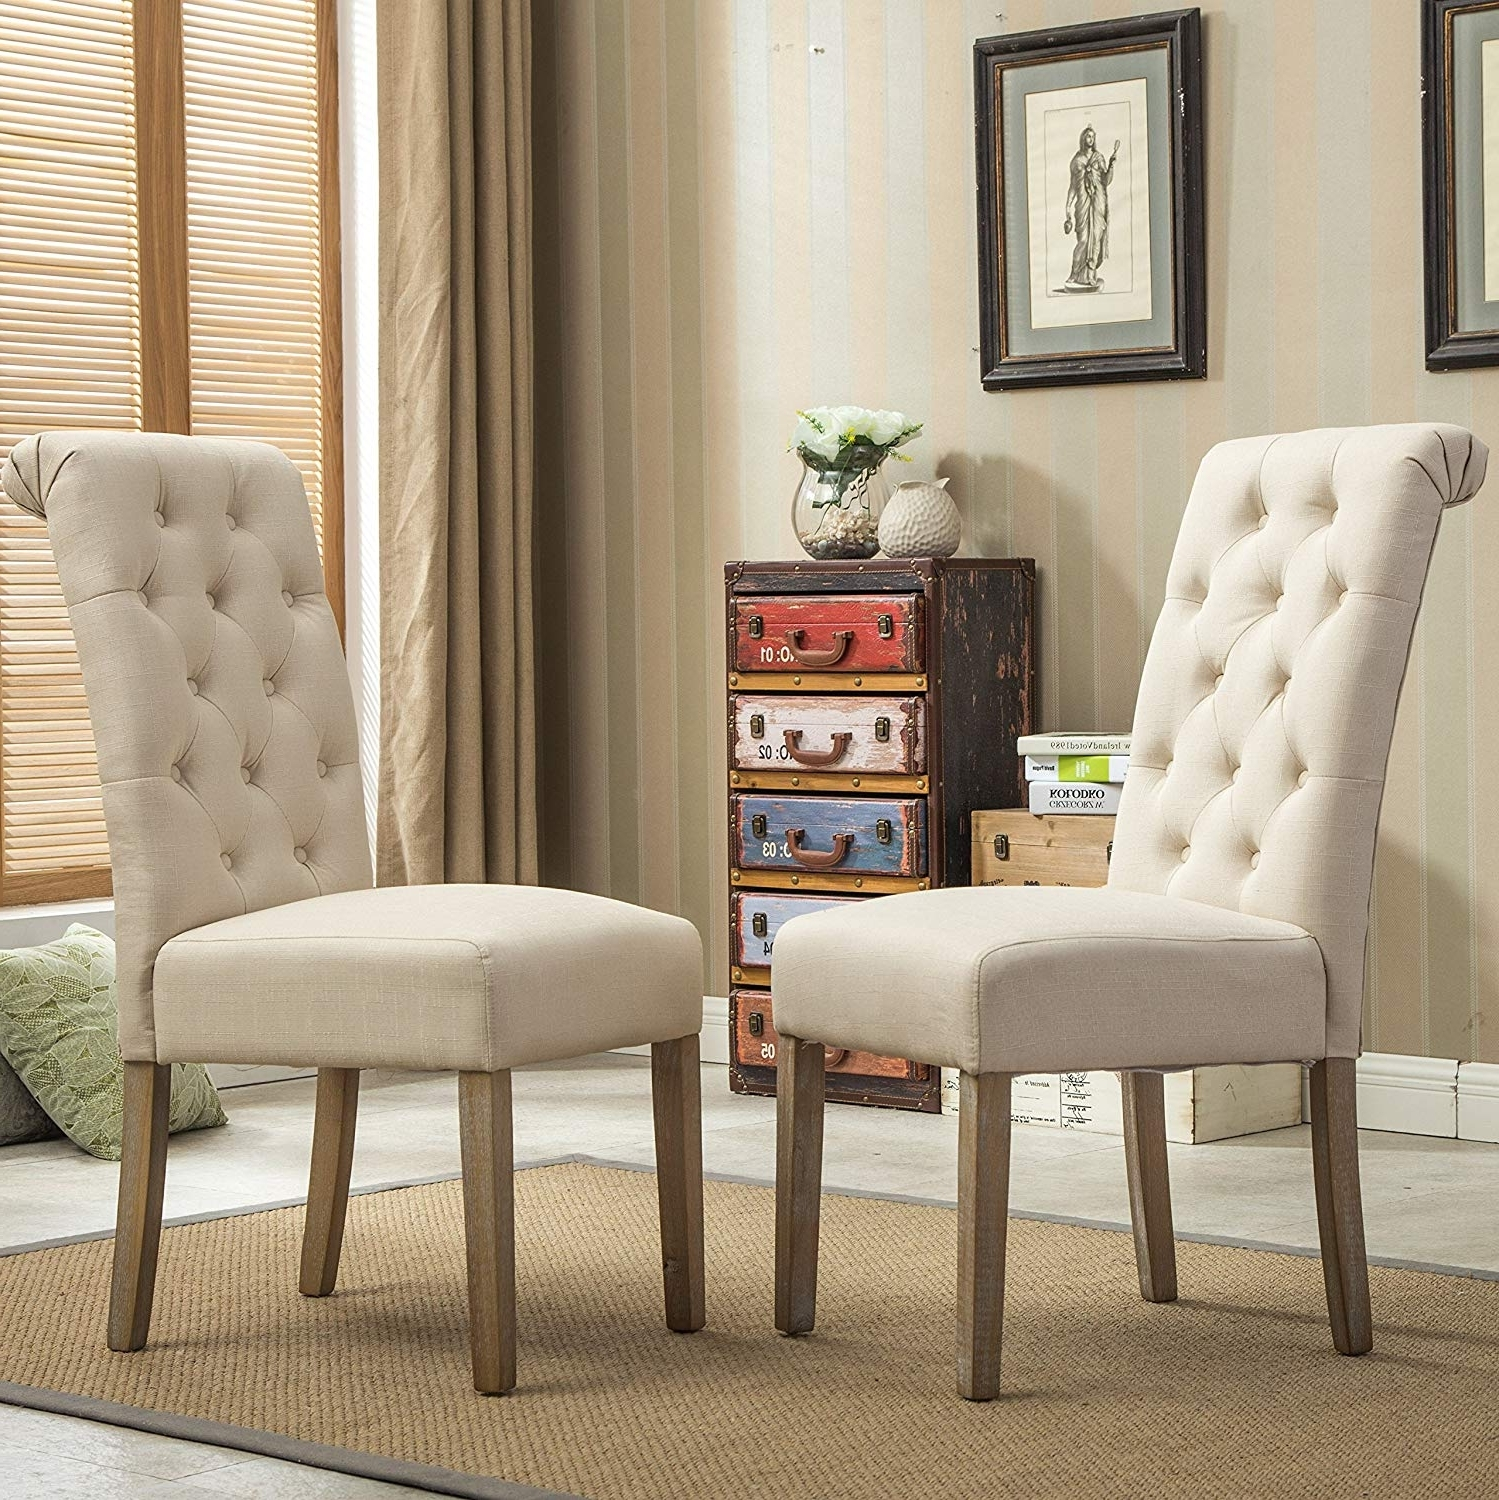 Market Side Chairs Pertaining To Famous Kitchen & Dining Room Chairs (View 19 of 20)